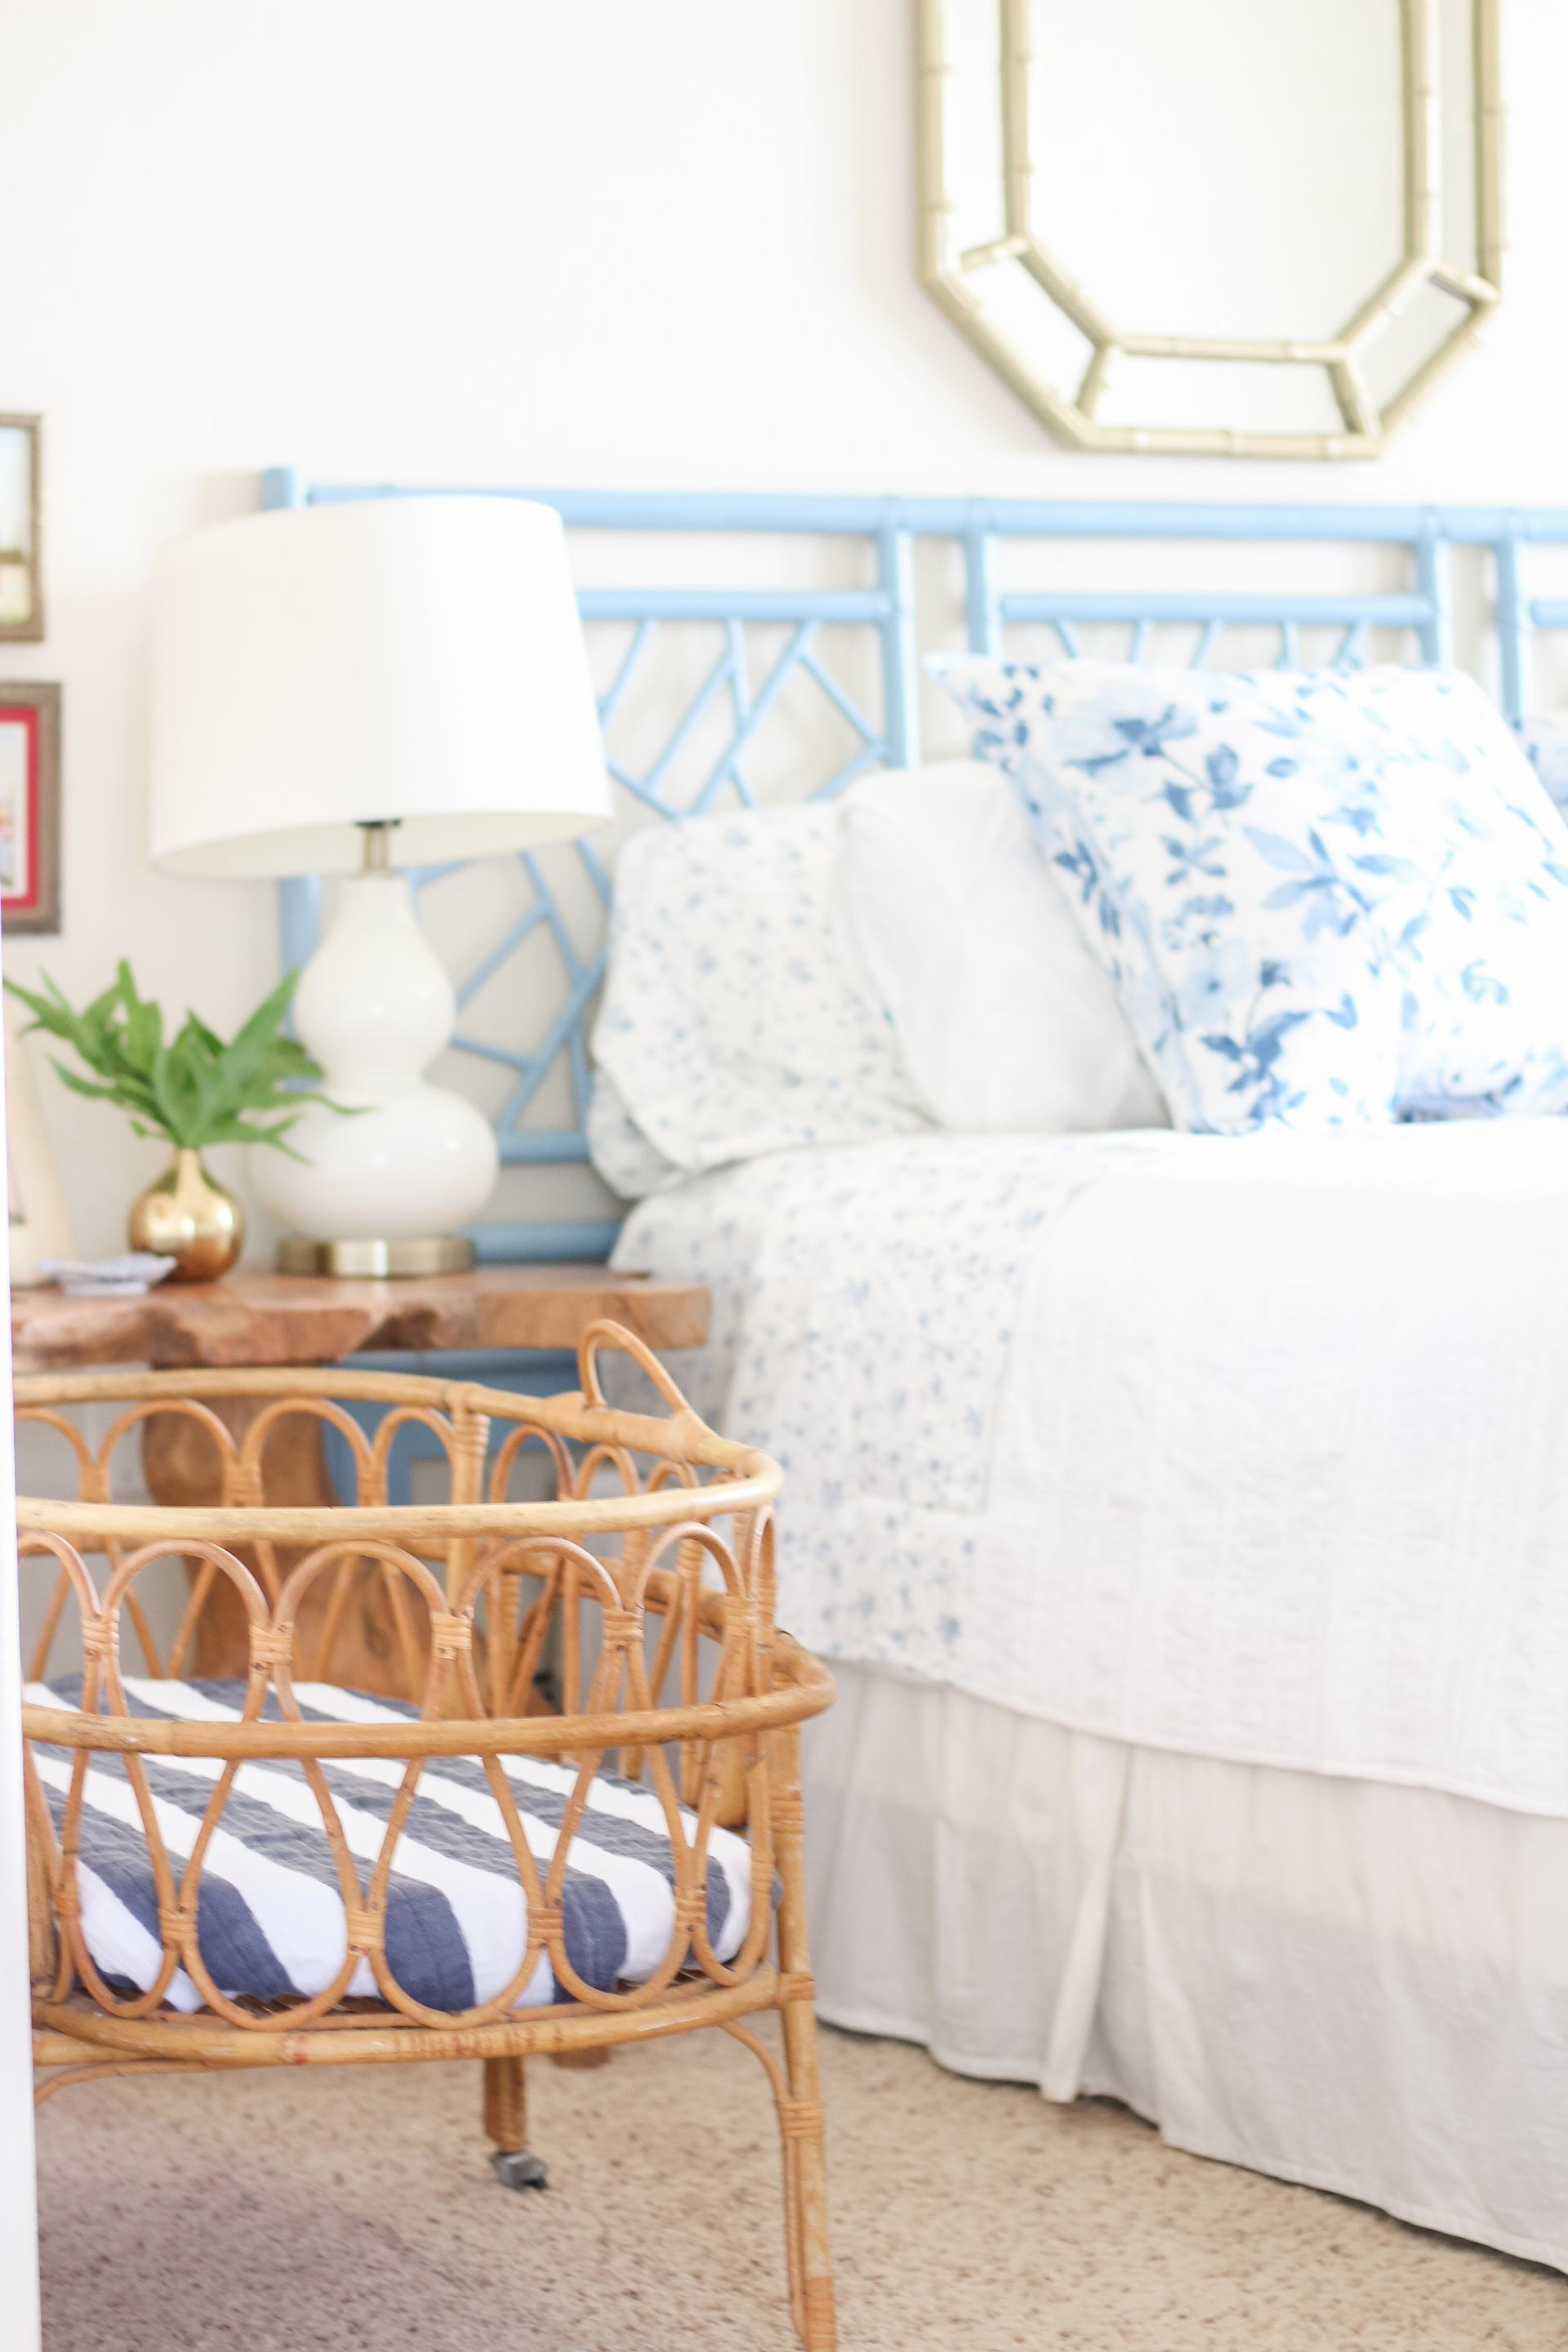 vintage bassinet - rattan bassinet - baby number 3 - small space living with baby - third baby - newborn plan - wicker bassinet - classic style - blue and white master bedroom - rattan headboard - vintage rattan